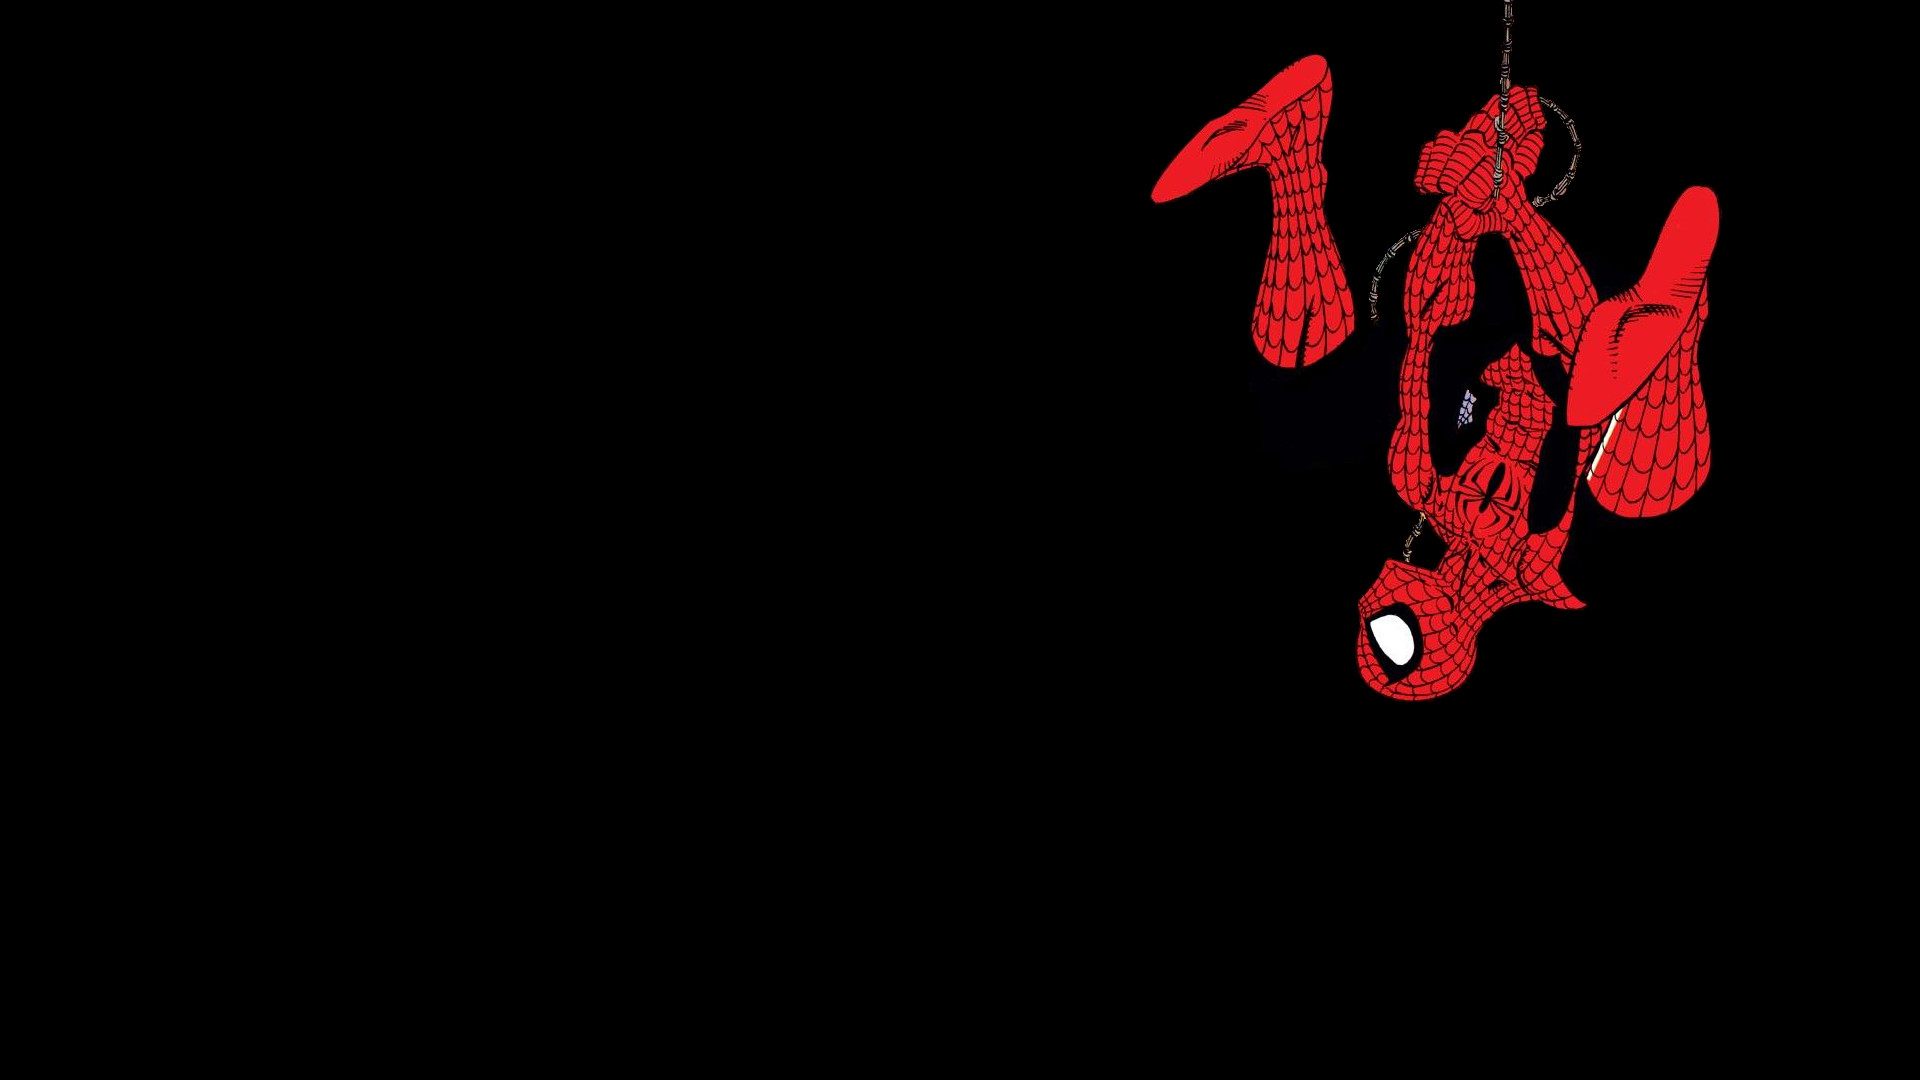 Made this wallpaper after reading ASM 340 (1920×1080) …